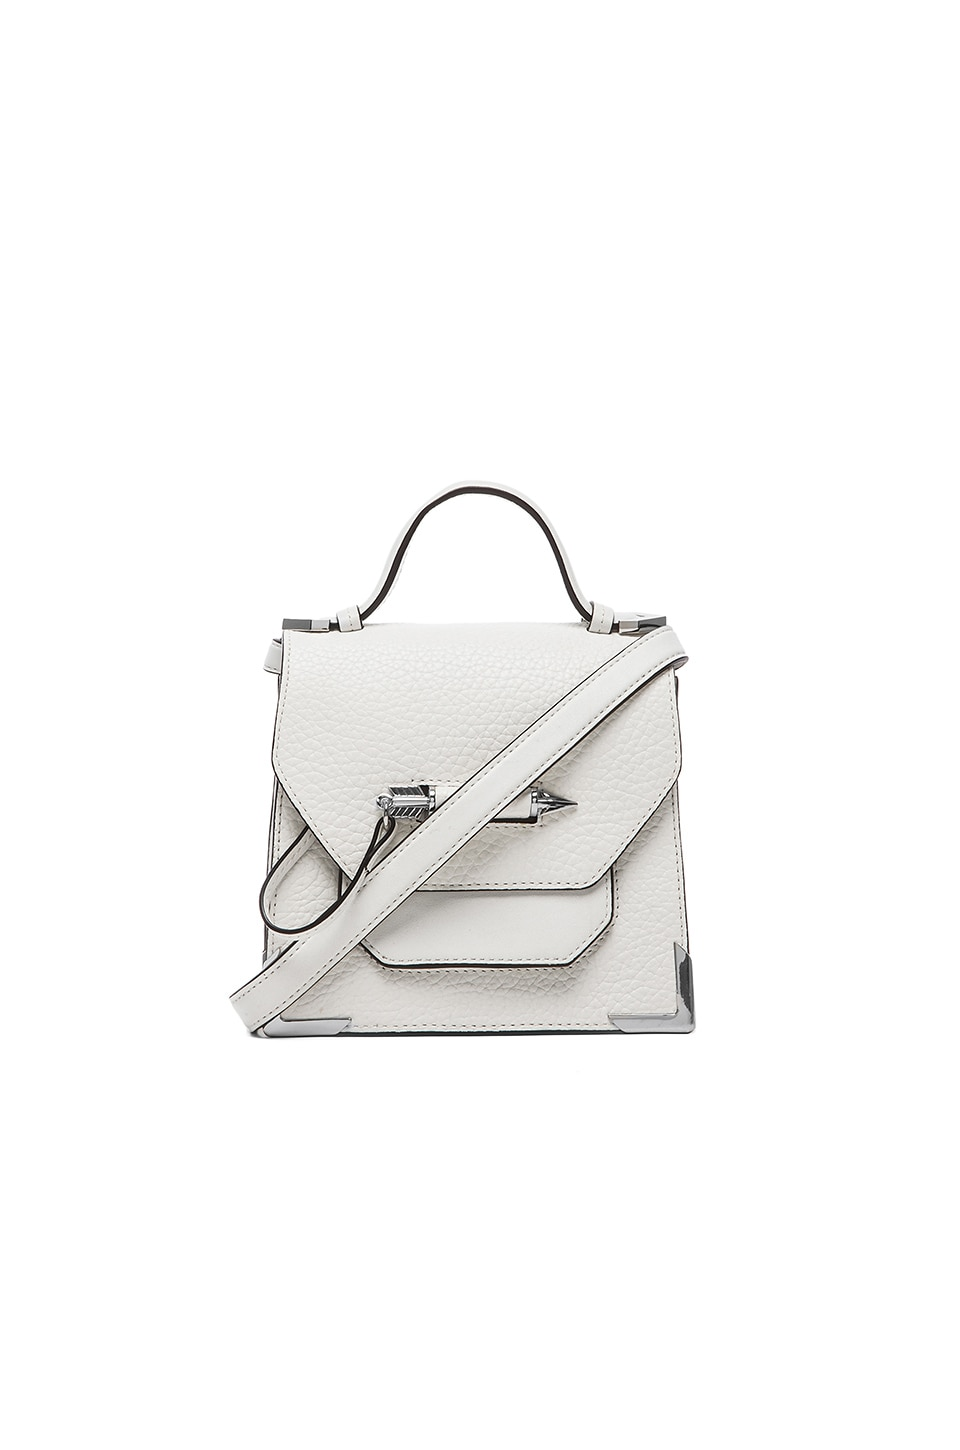 Mackage Rubie Small Crossbody in White